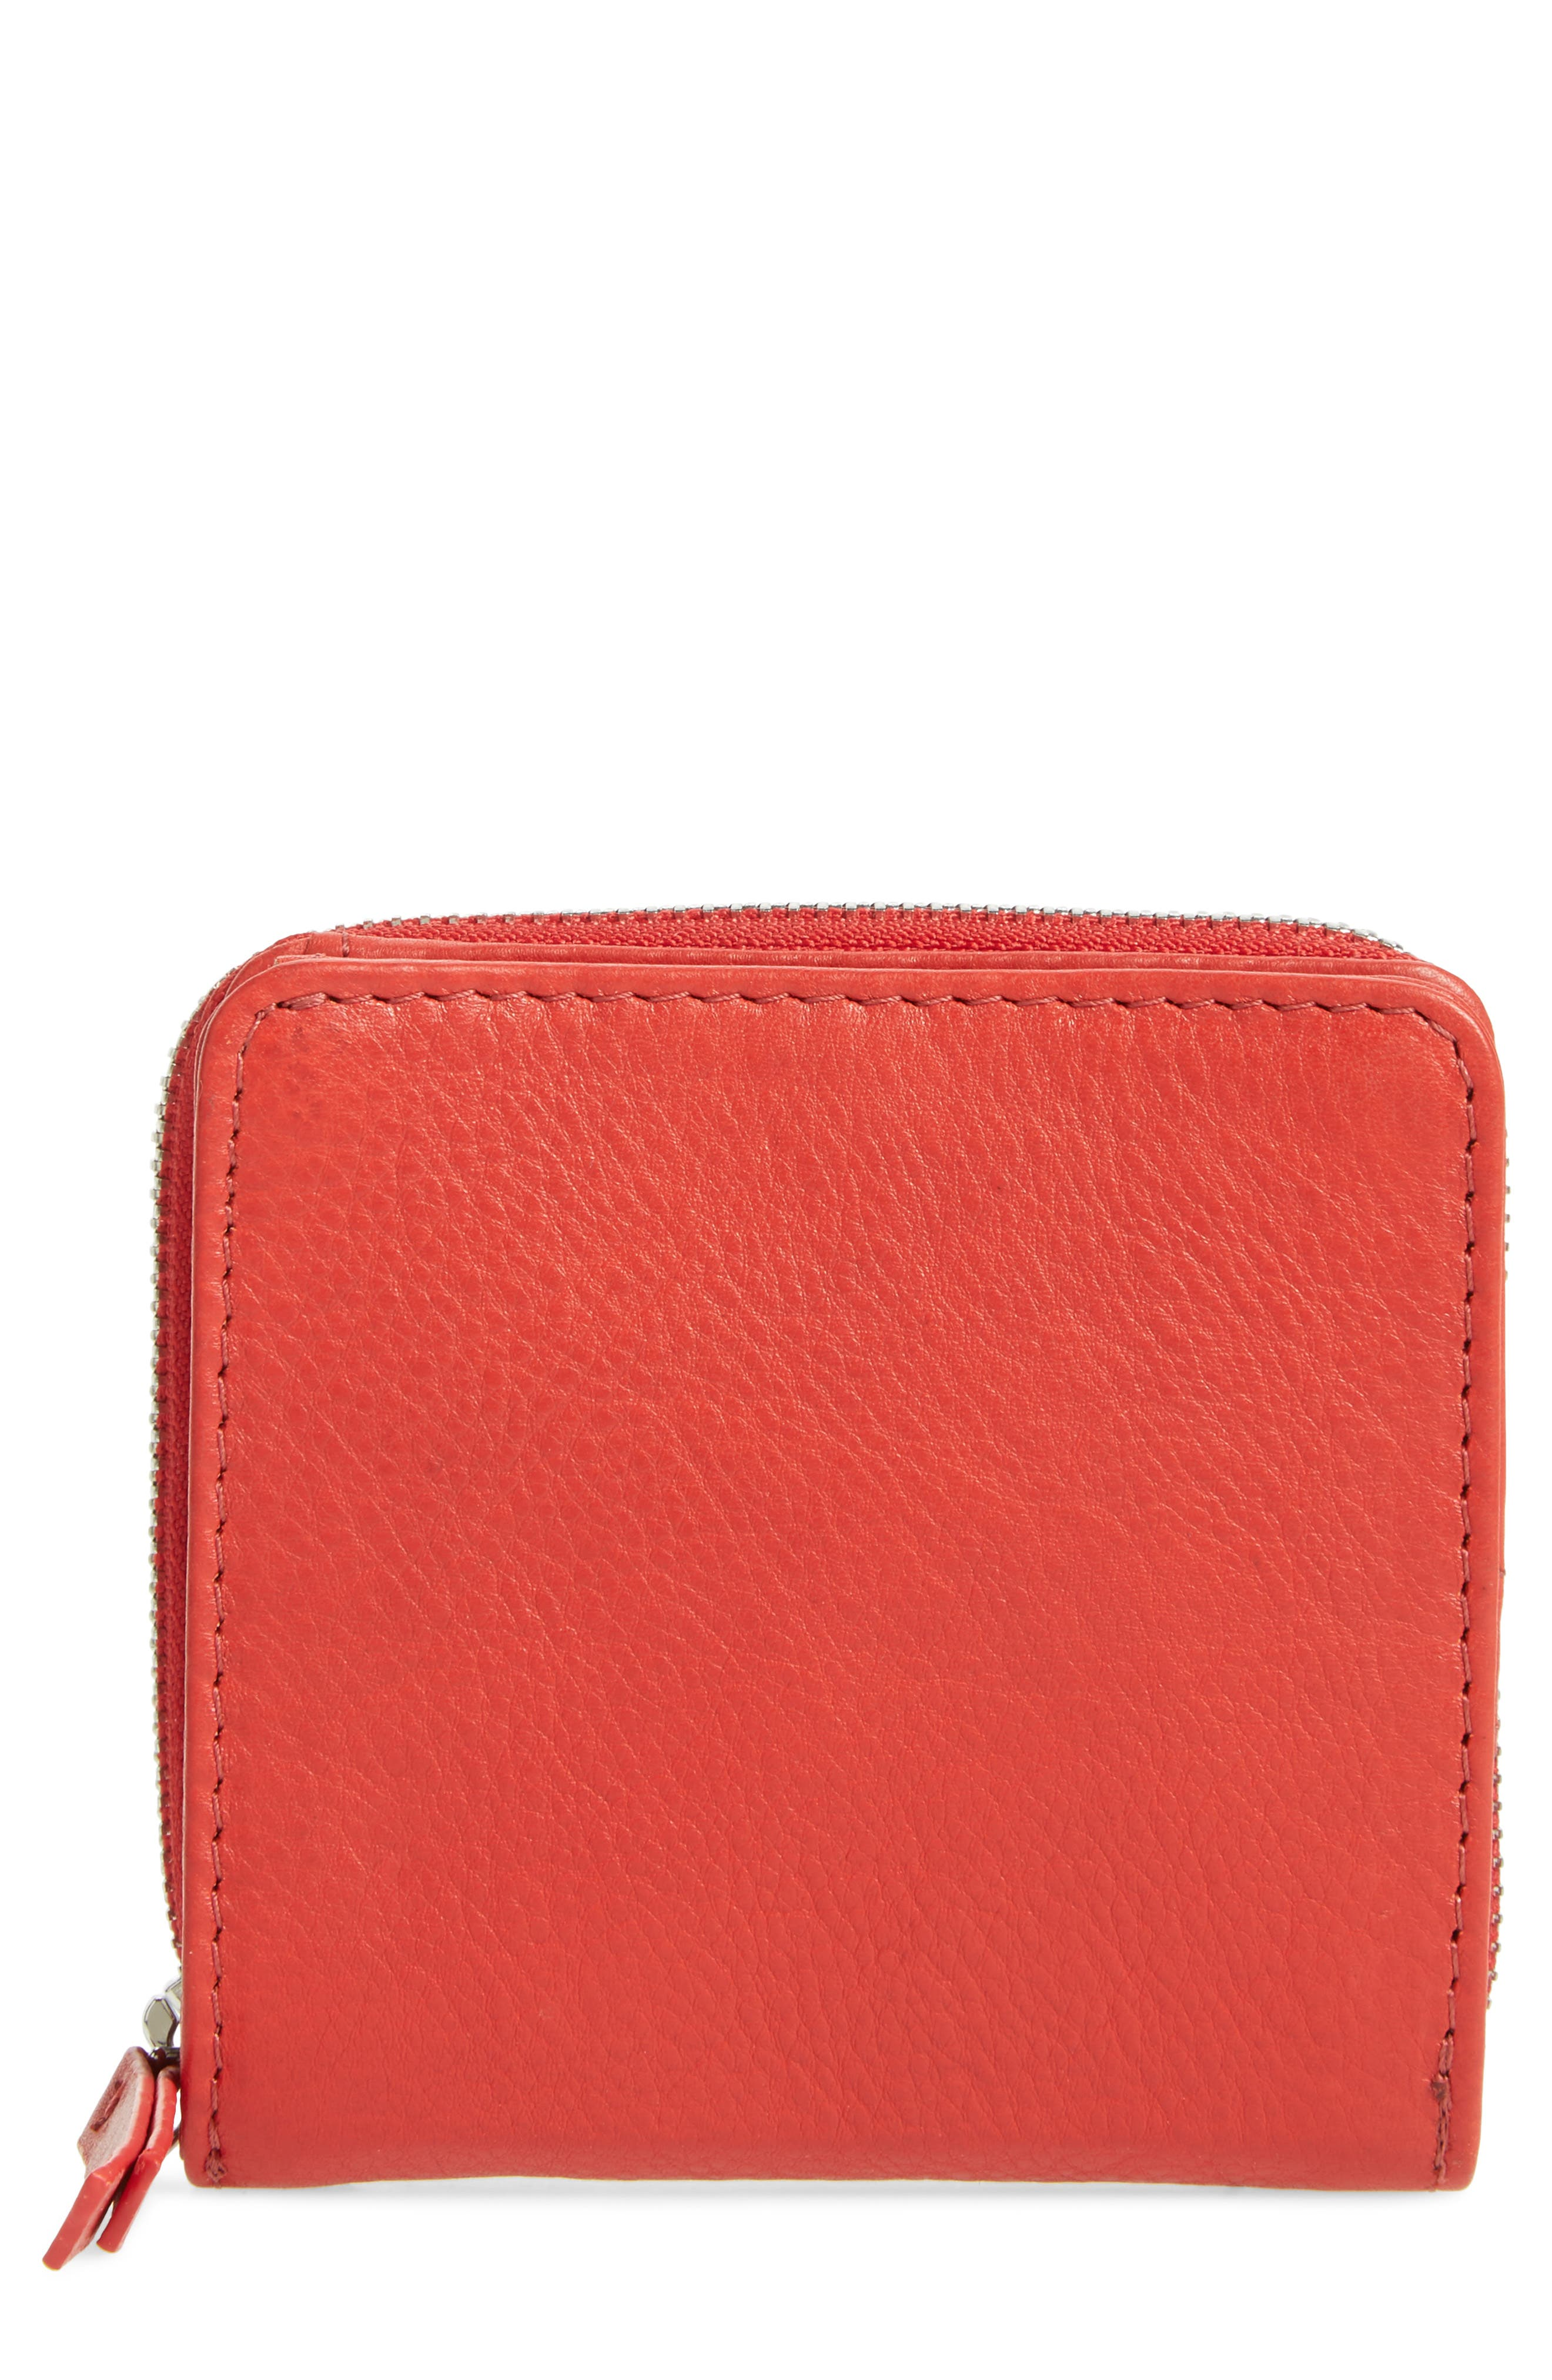 Leather Zip Around Wallet,                             Main thumbnail 1, color,                             Red